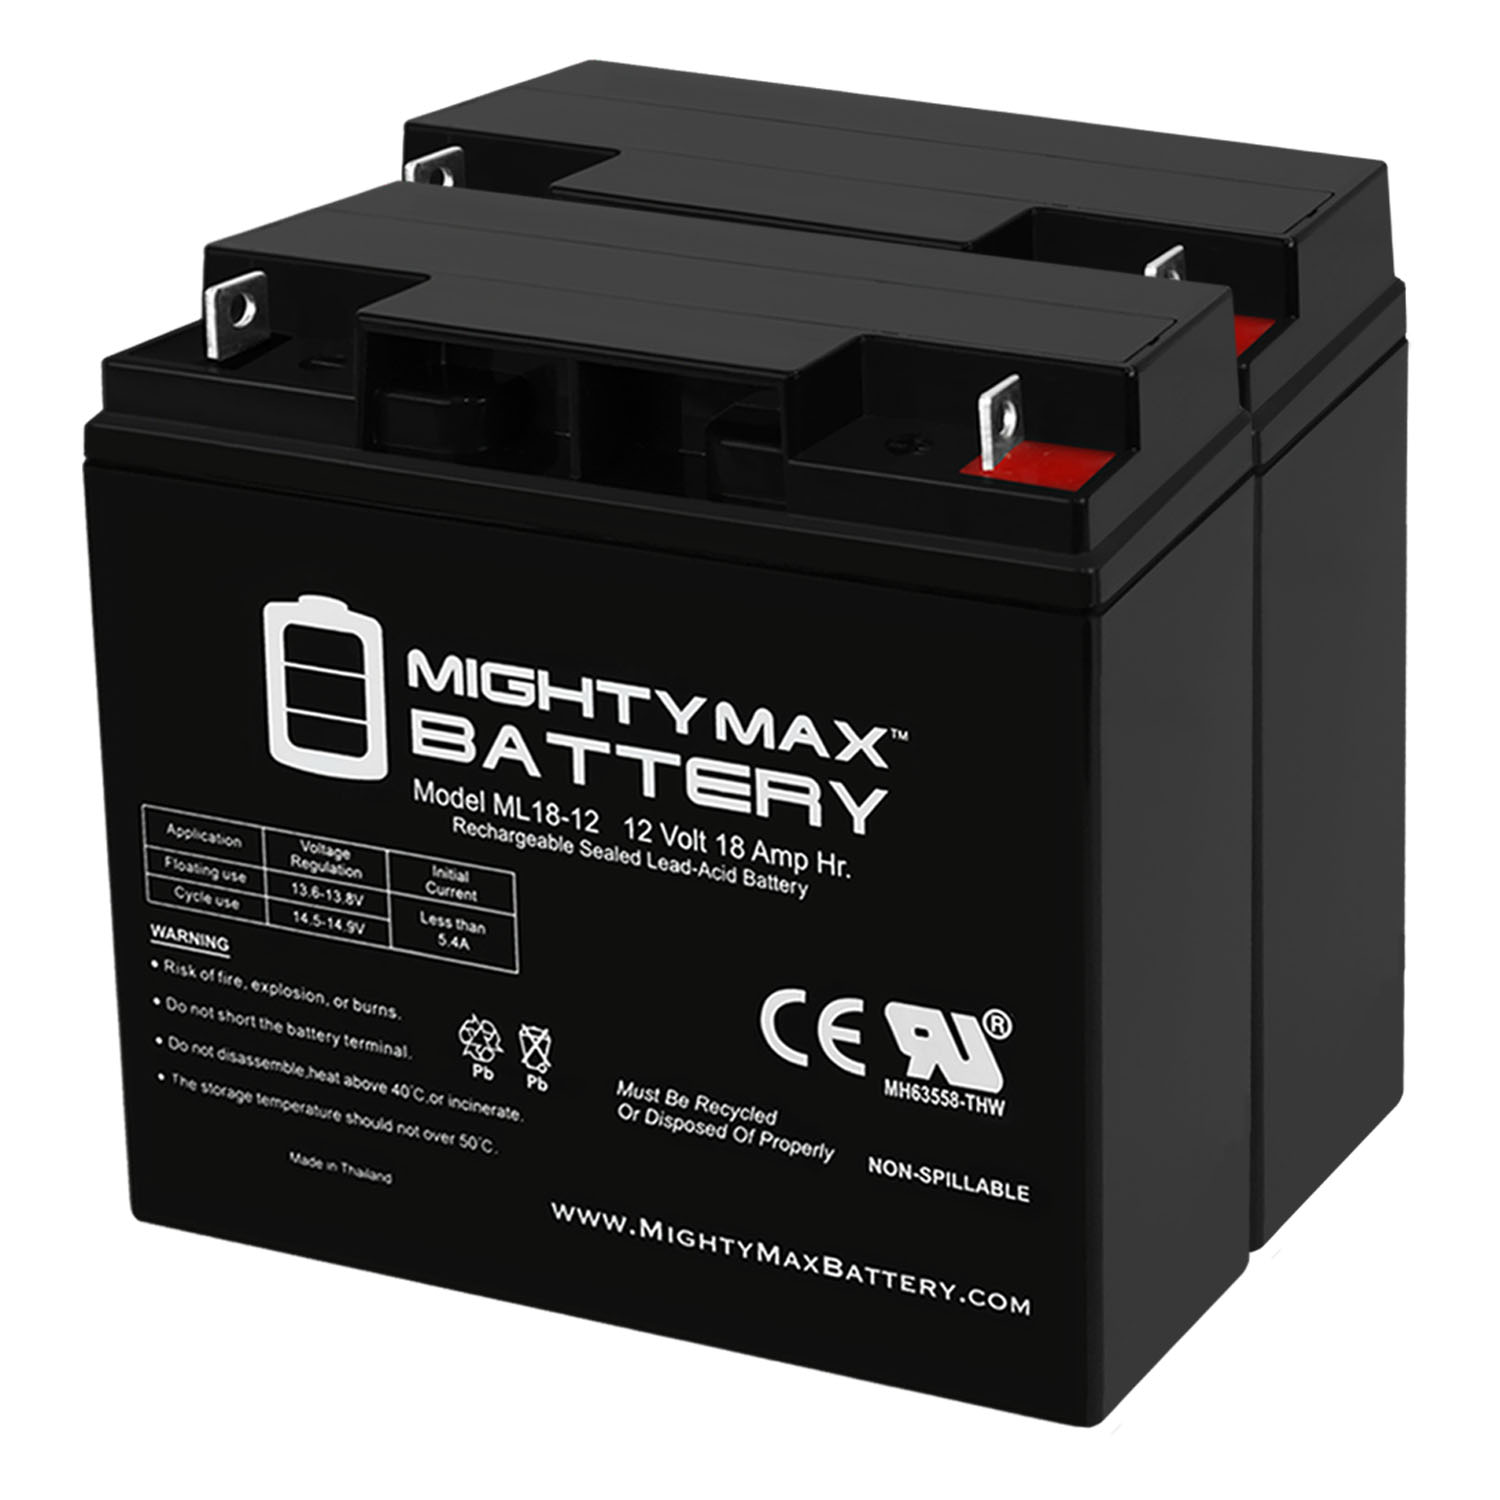 12V 18AH Battery for Door King 6400 10W Solar Control Box - 2 Pack